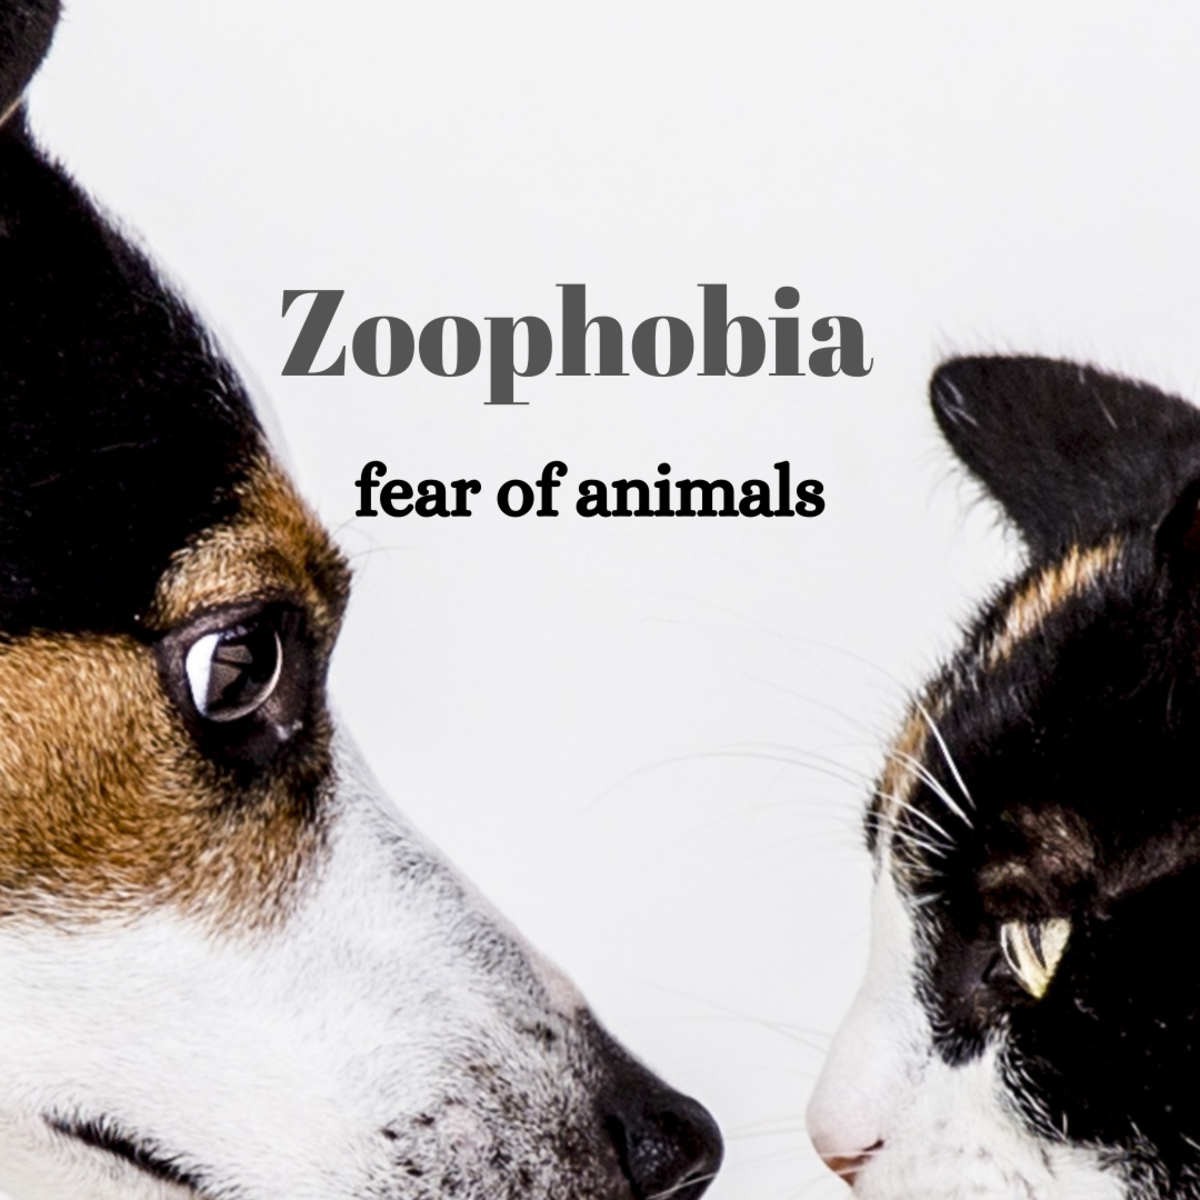 Zoophobia, a fear of animals